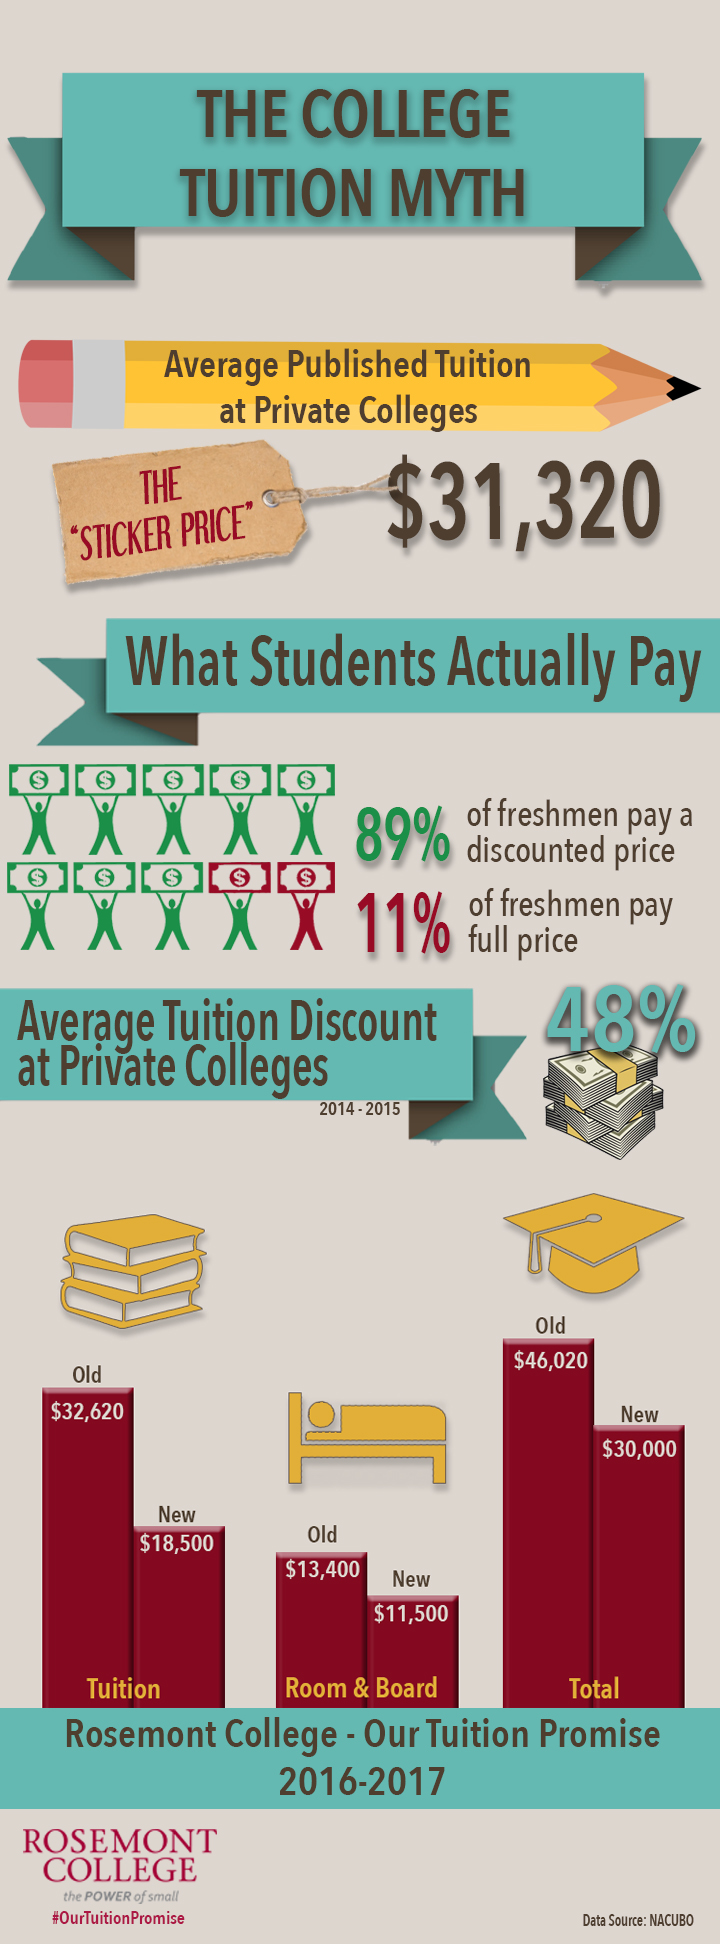 The College Tuition Myth